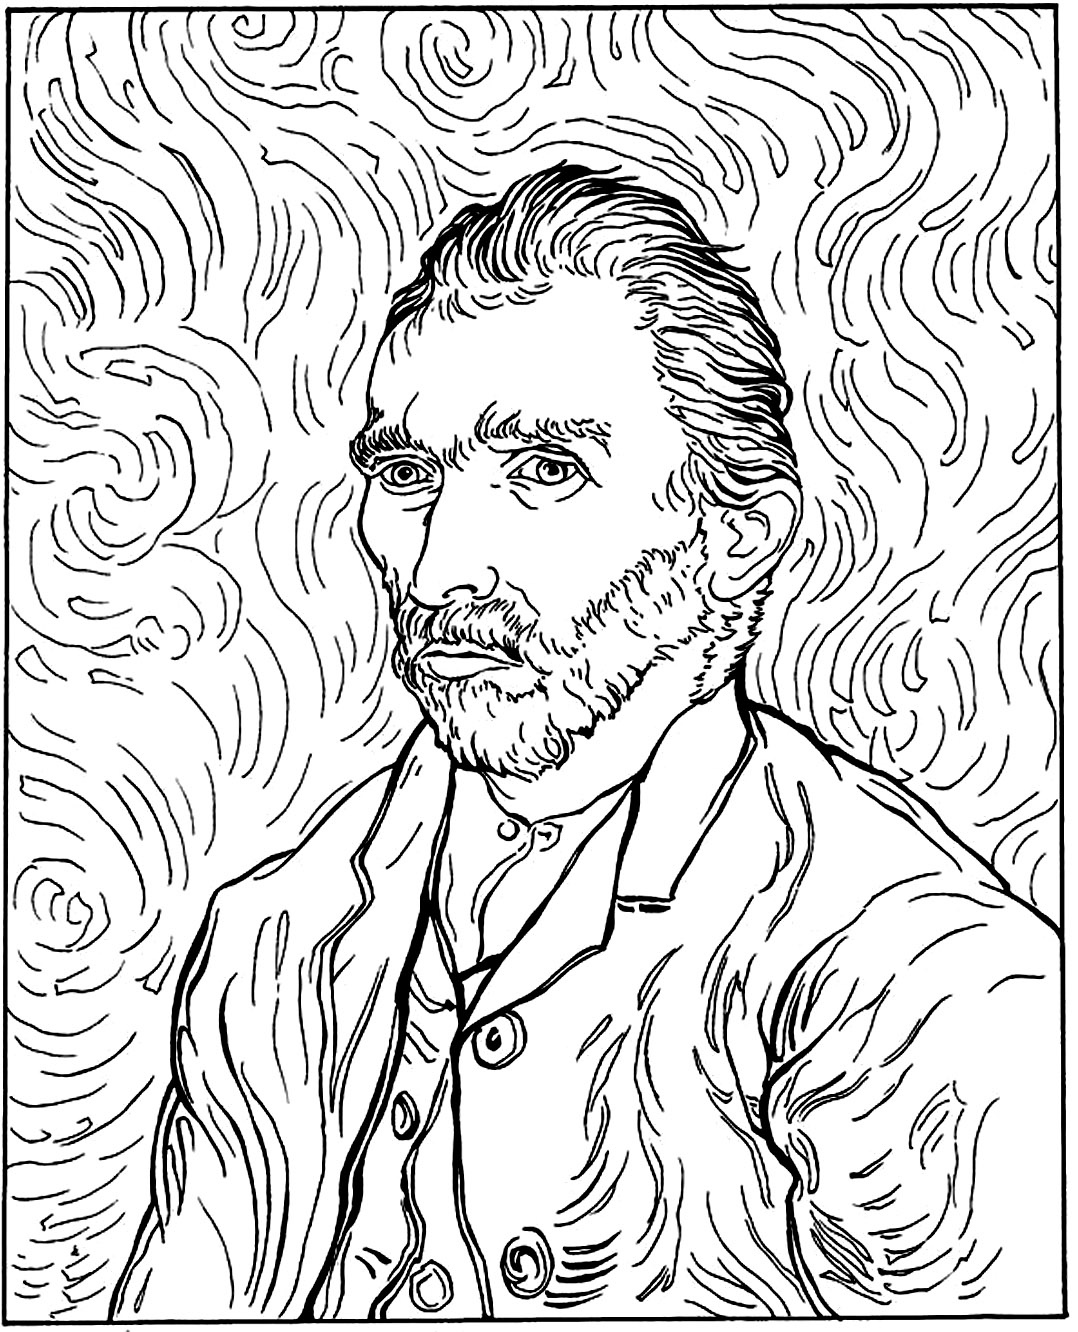 Van gogh autoportrait - Masterpieces Adult Coloring Pages